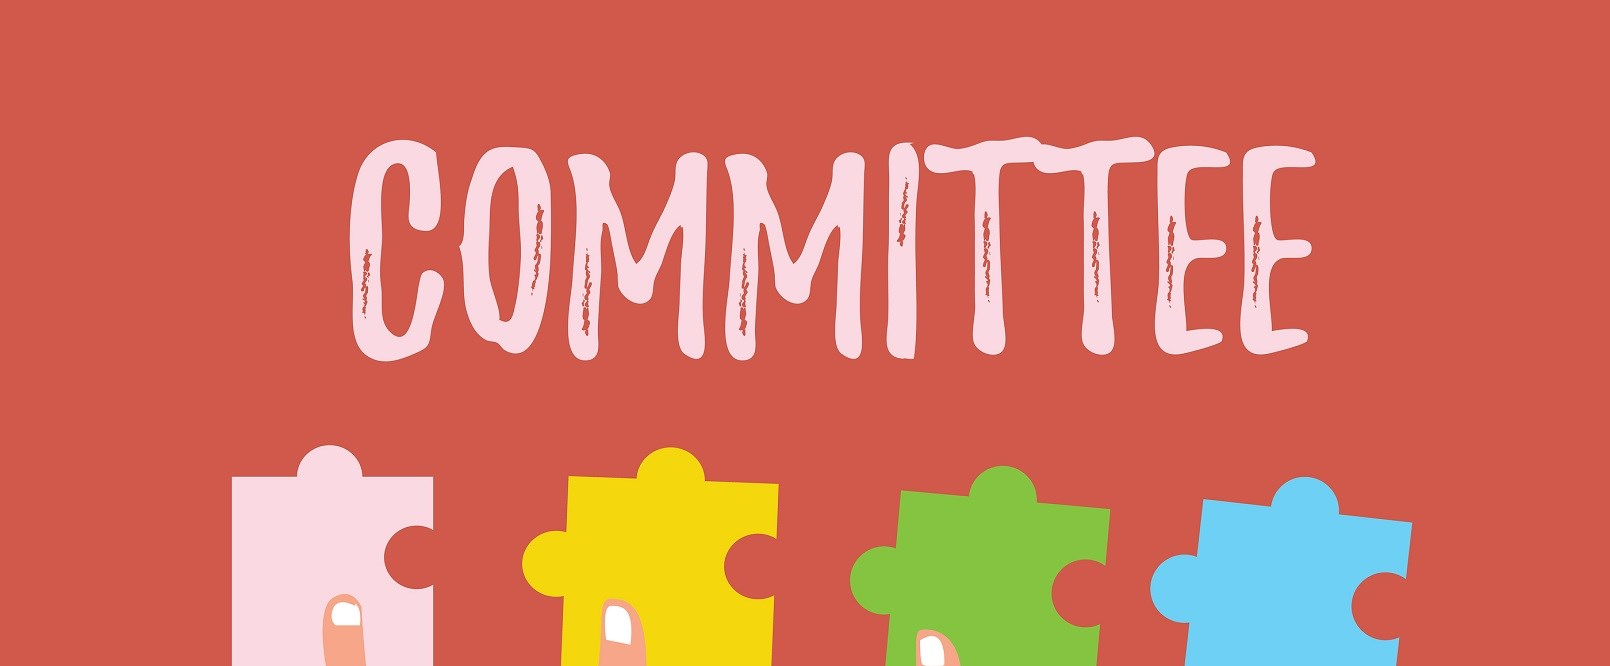 committees sign